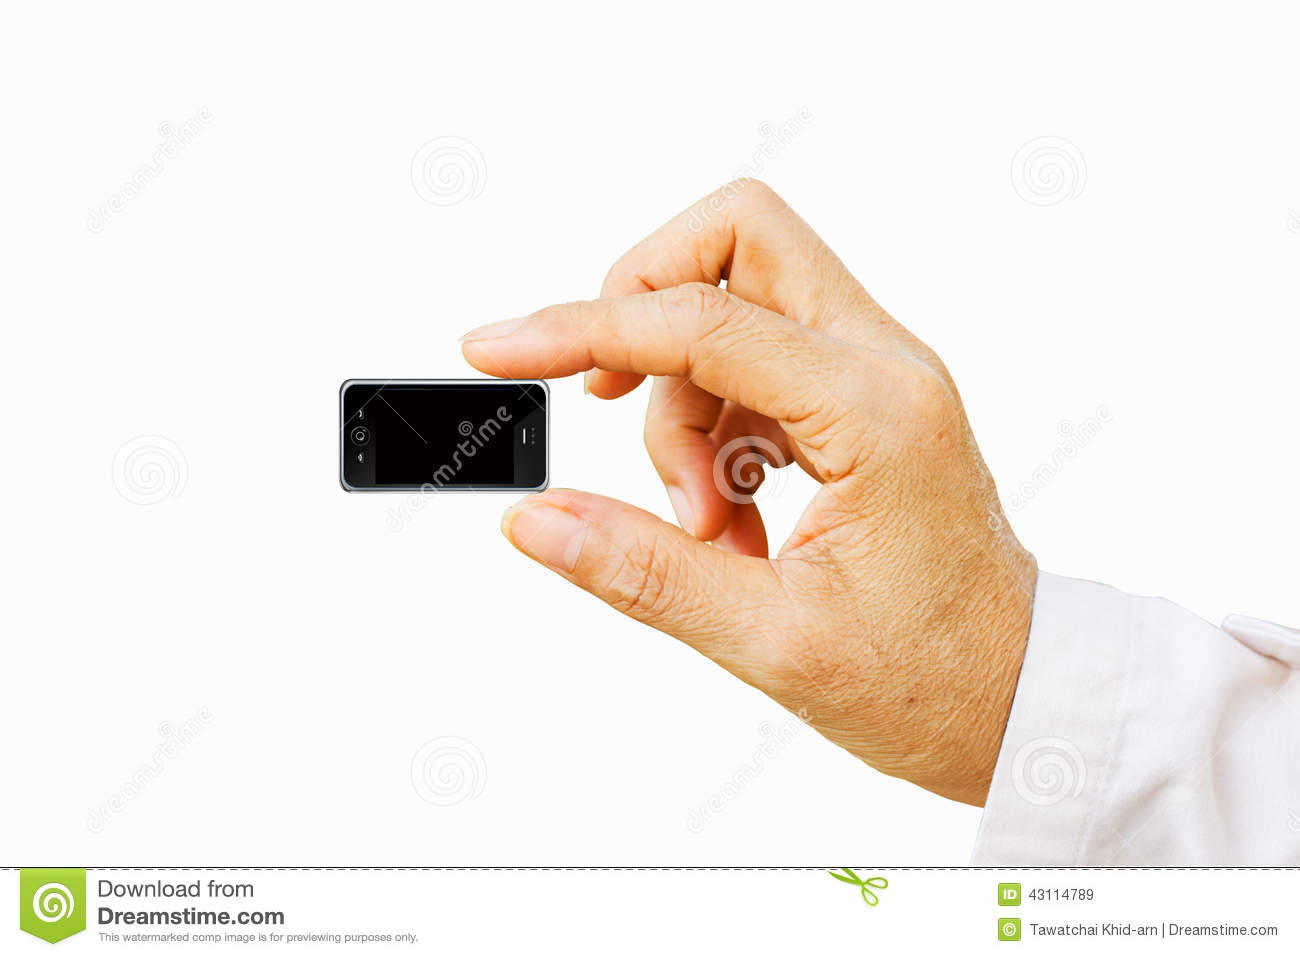 Hand Holding Very Small Mobile Smart Phone With Black